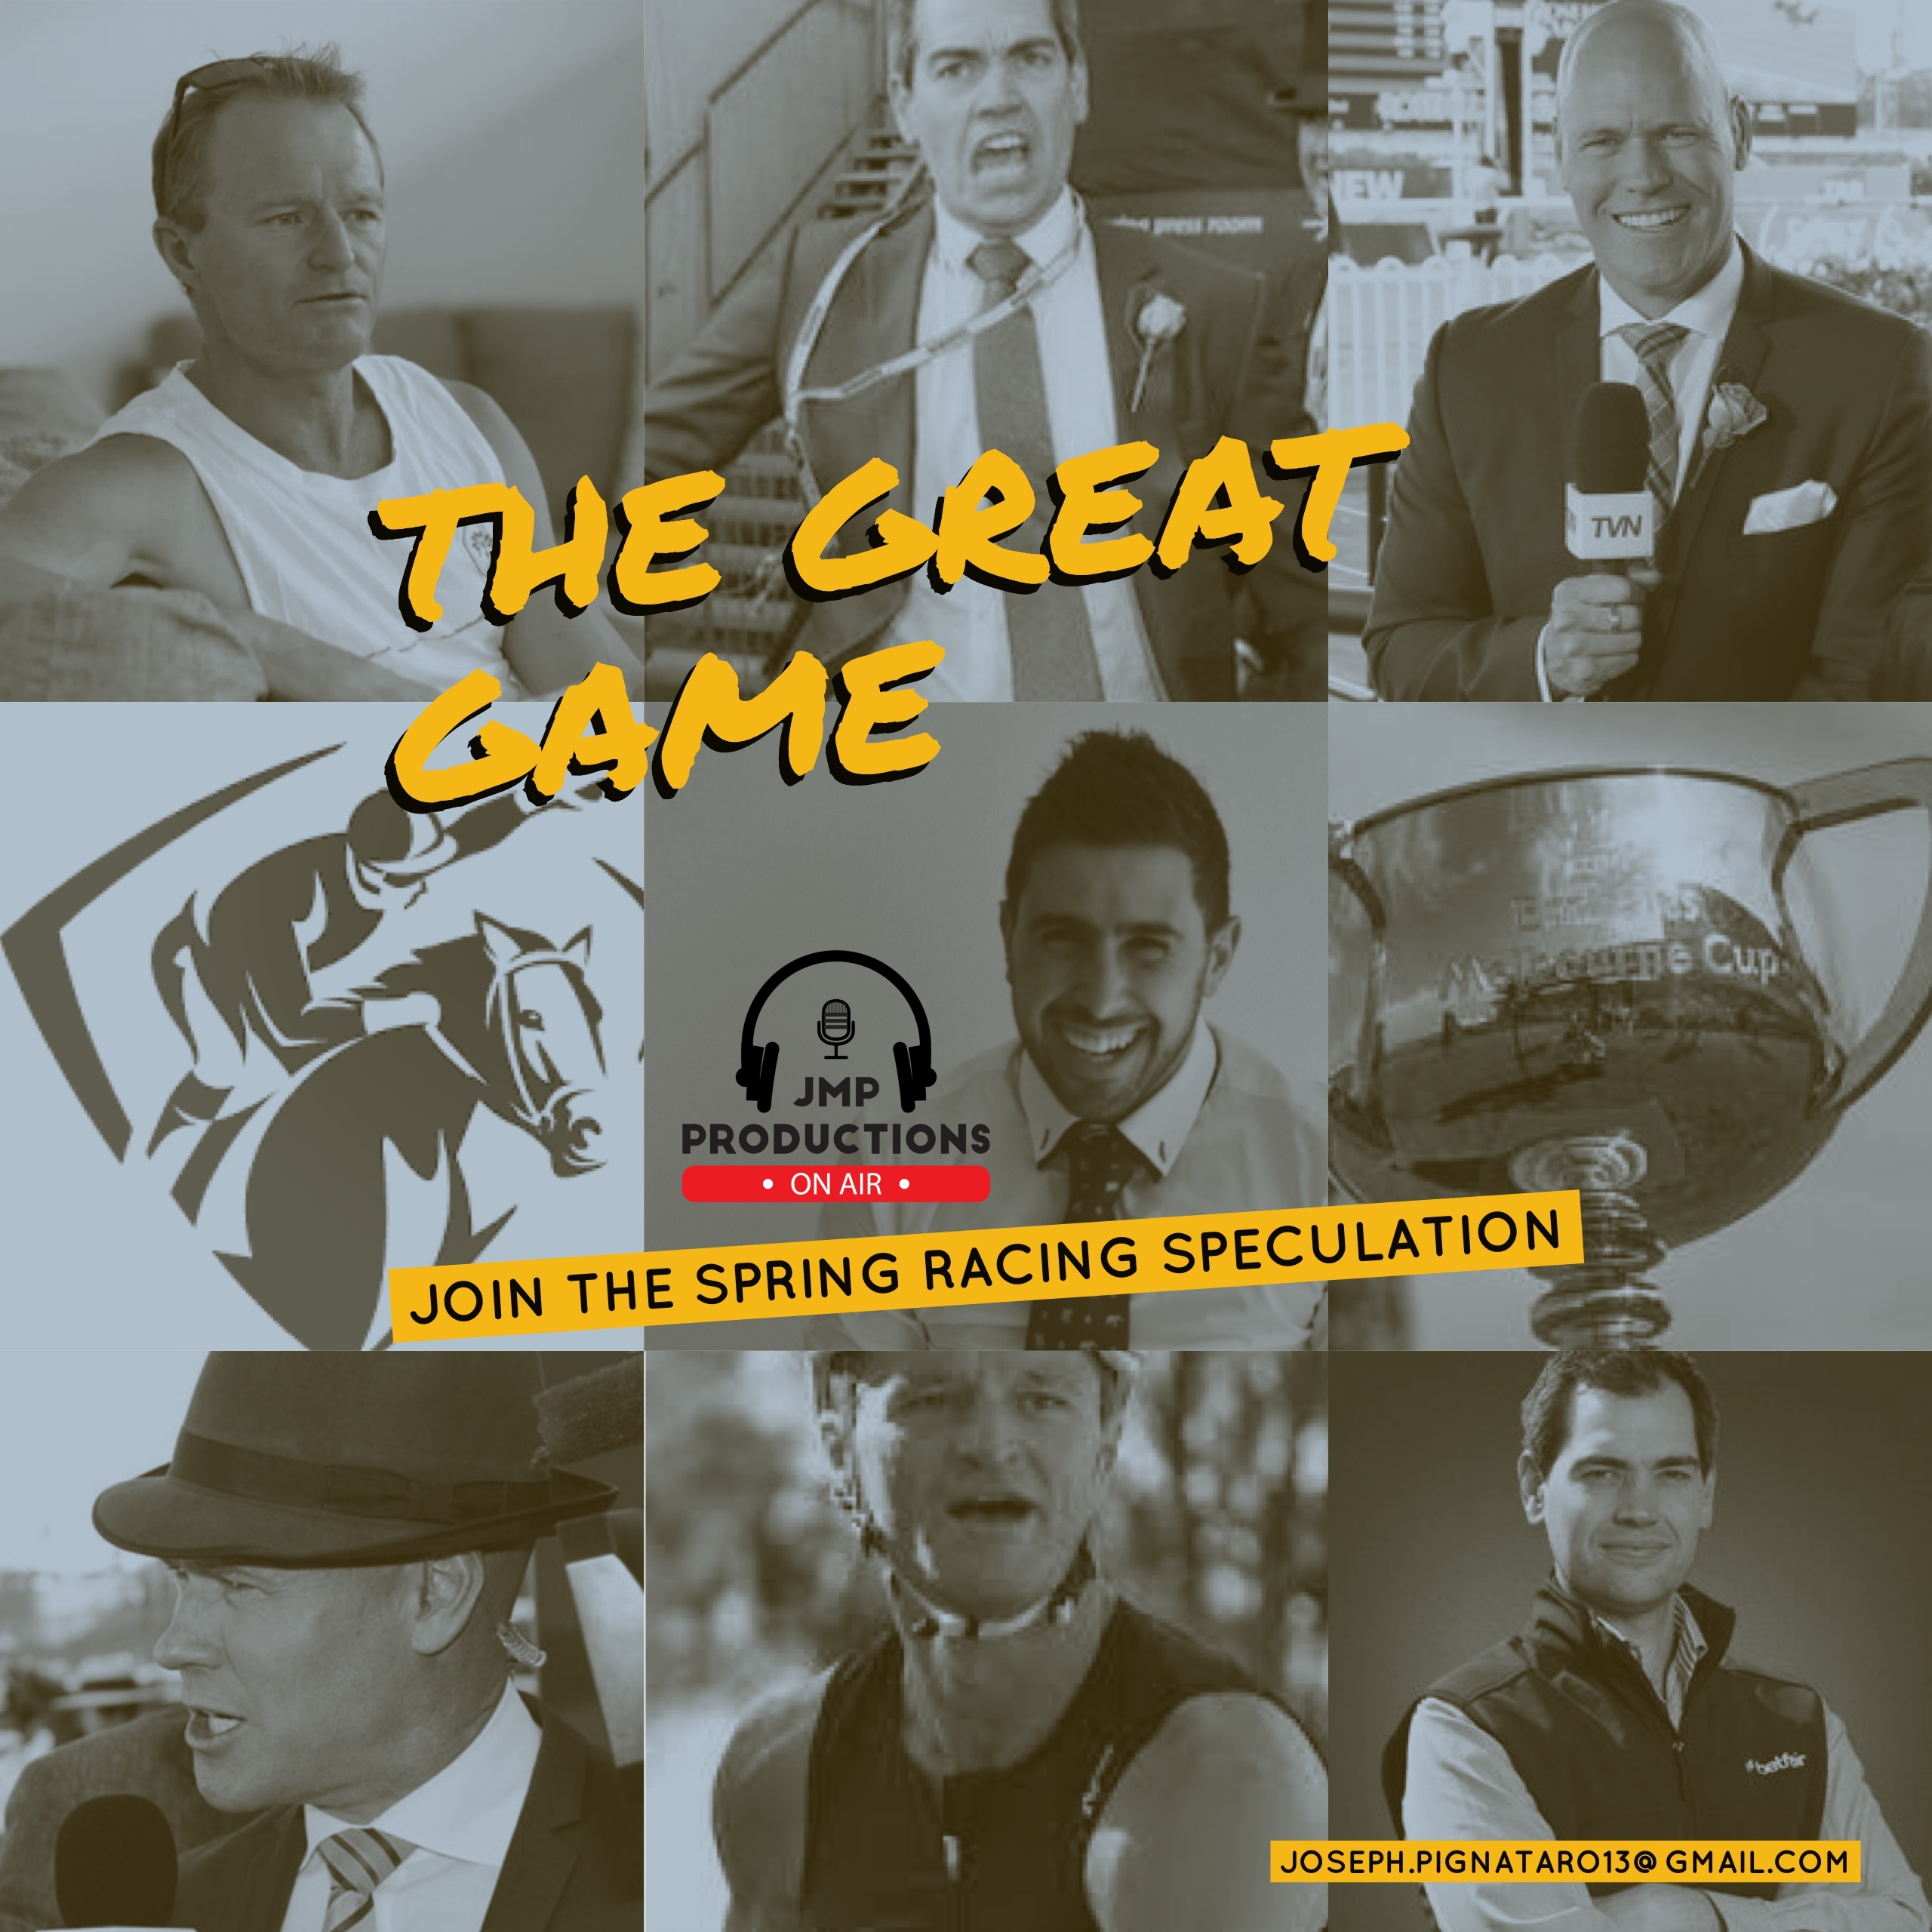 Episode 14 - The Great Game (March 21, 2019)